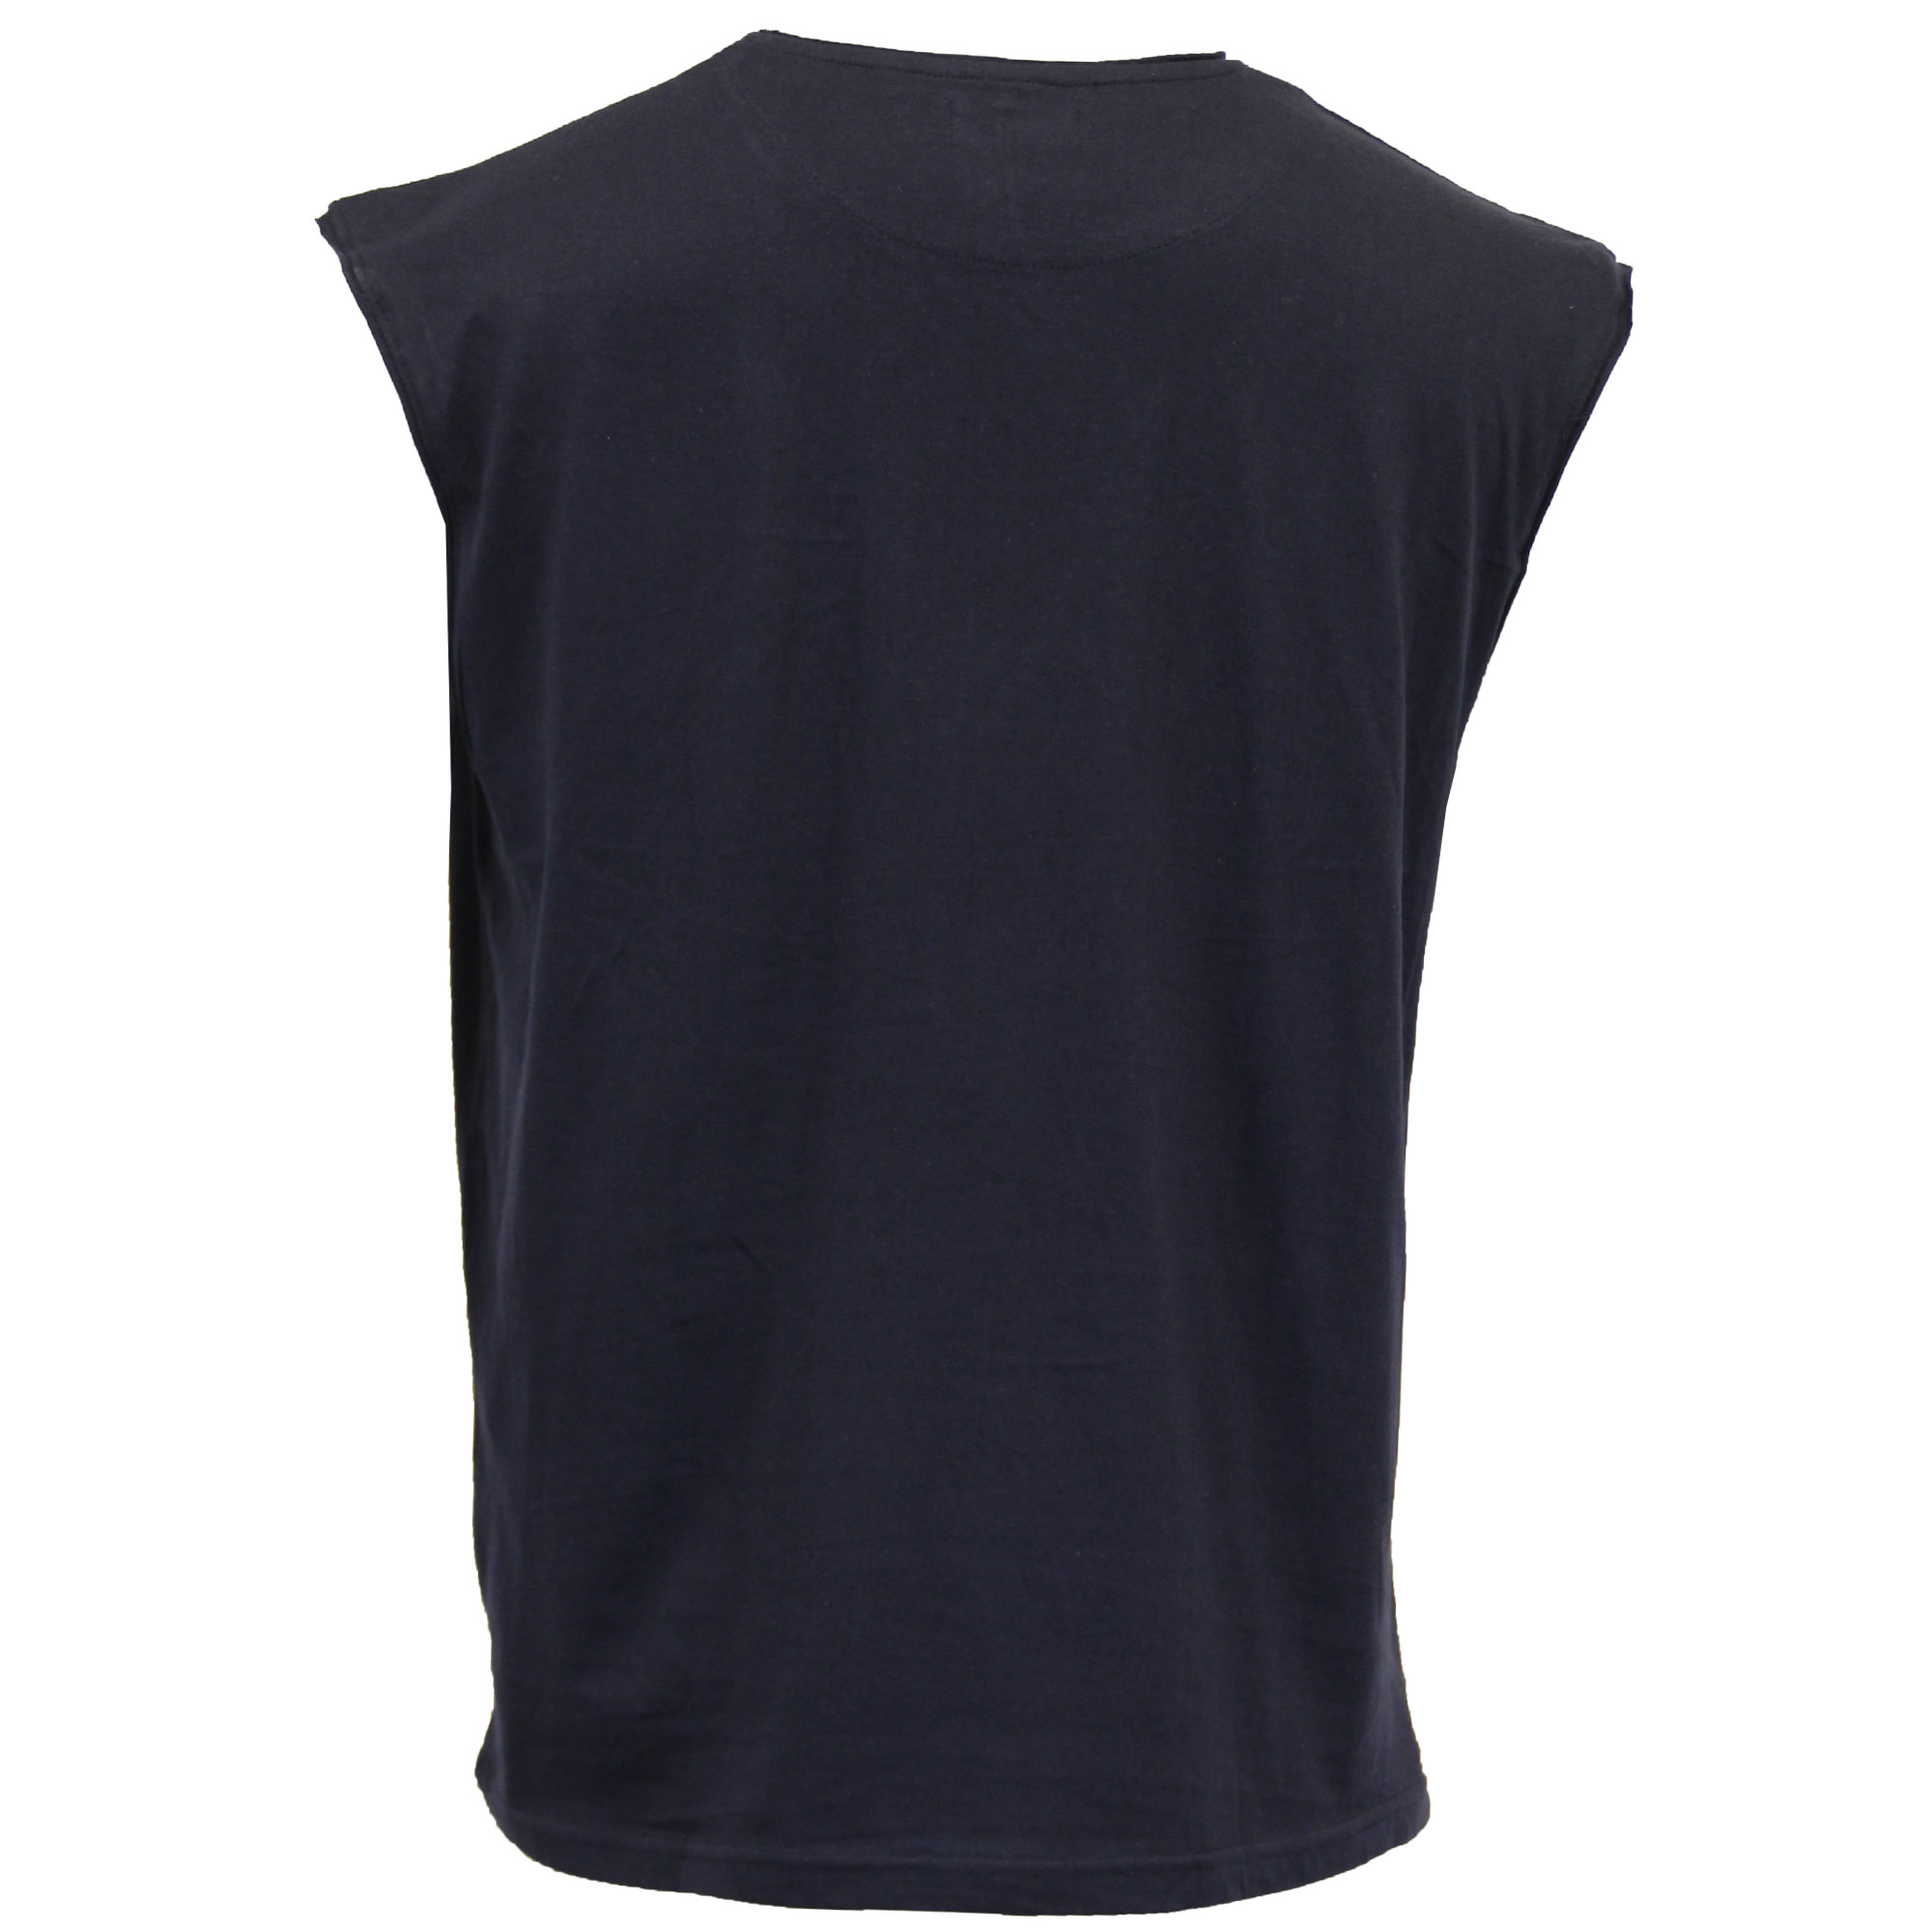 Mens-Vest-Brave-Soul-Tank-Top-Varley-Gym-Training-Crew-Neck-Casual-Summer-New thumbnail 11